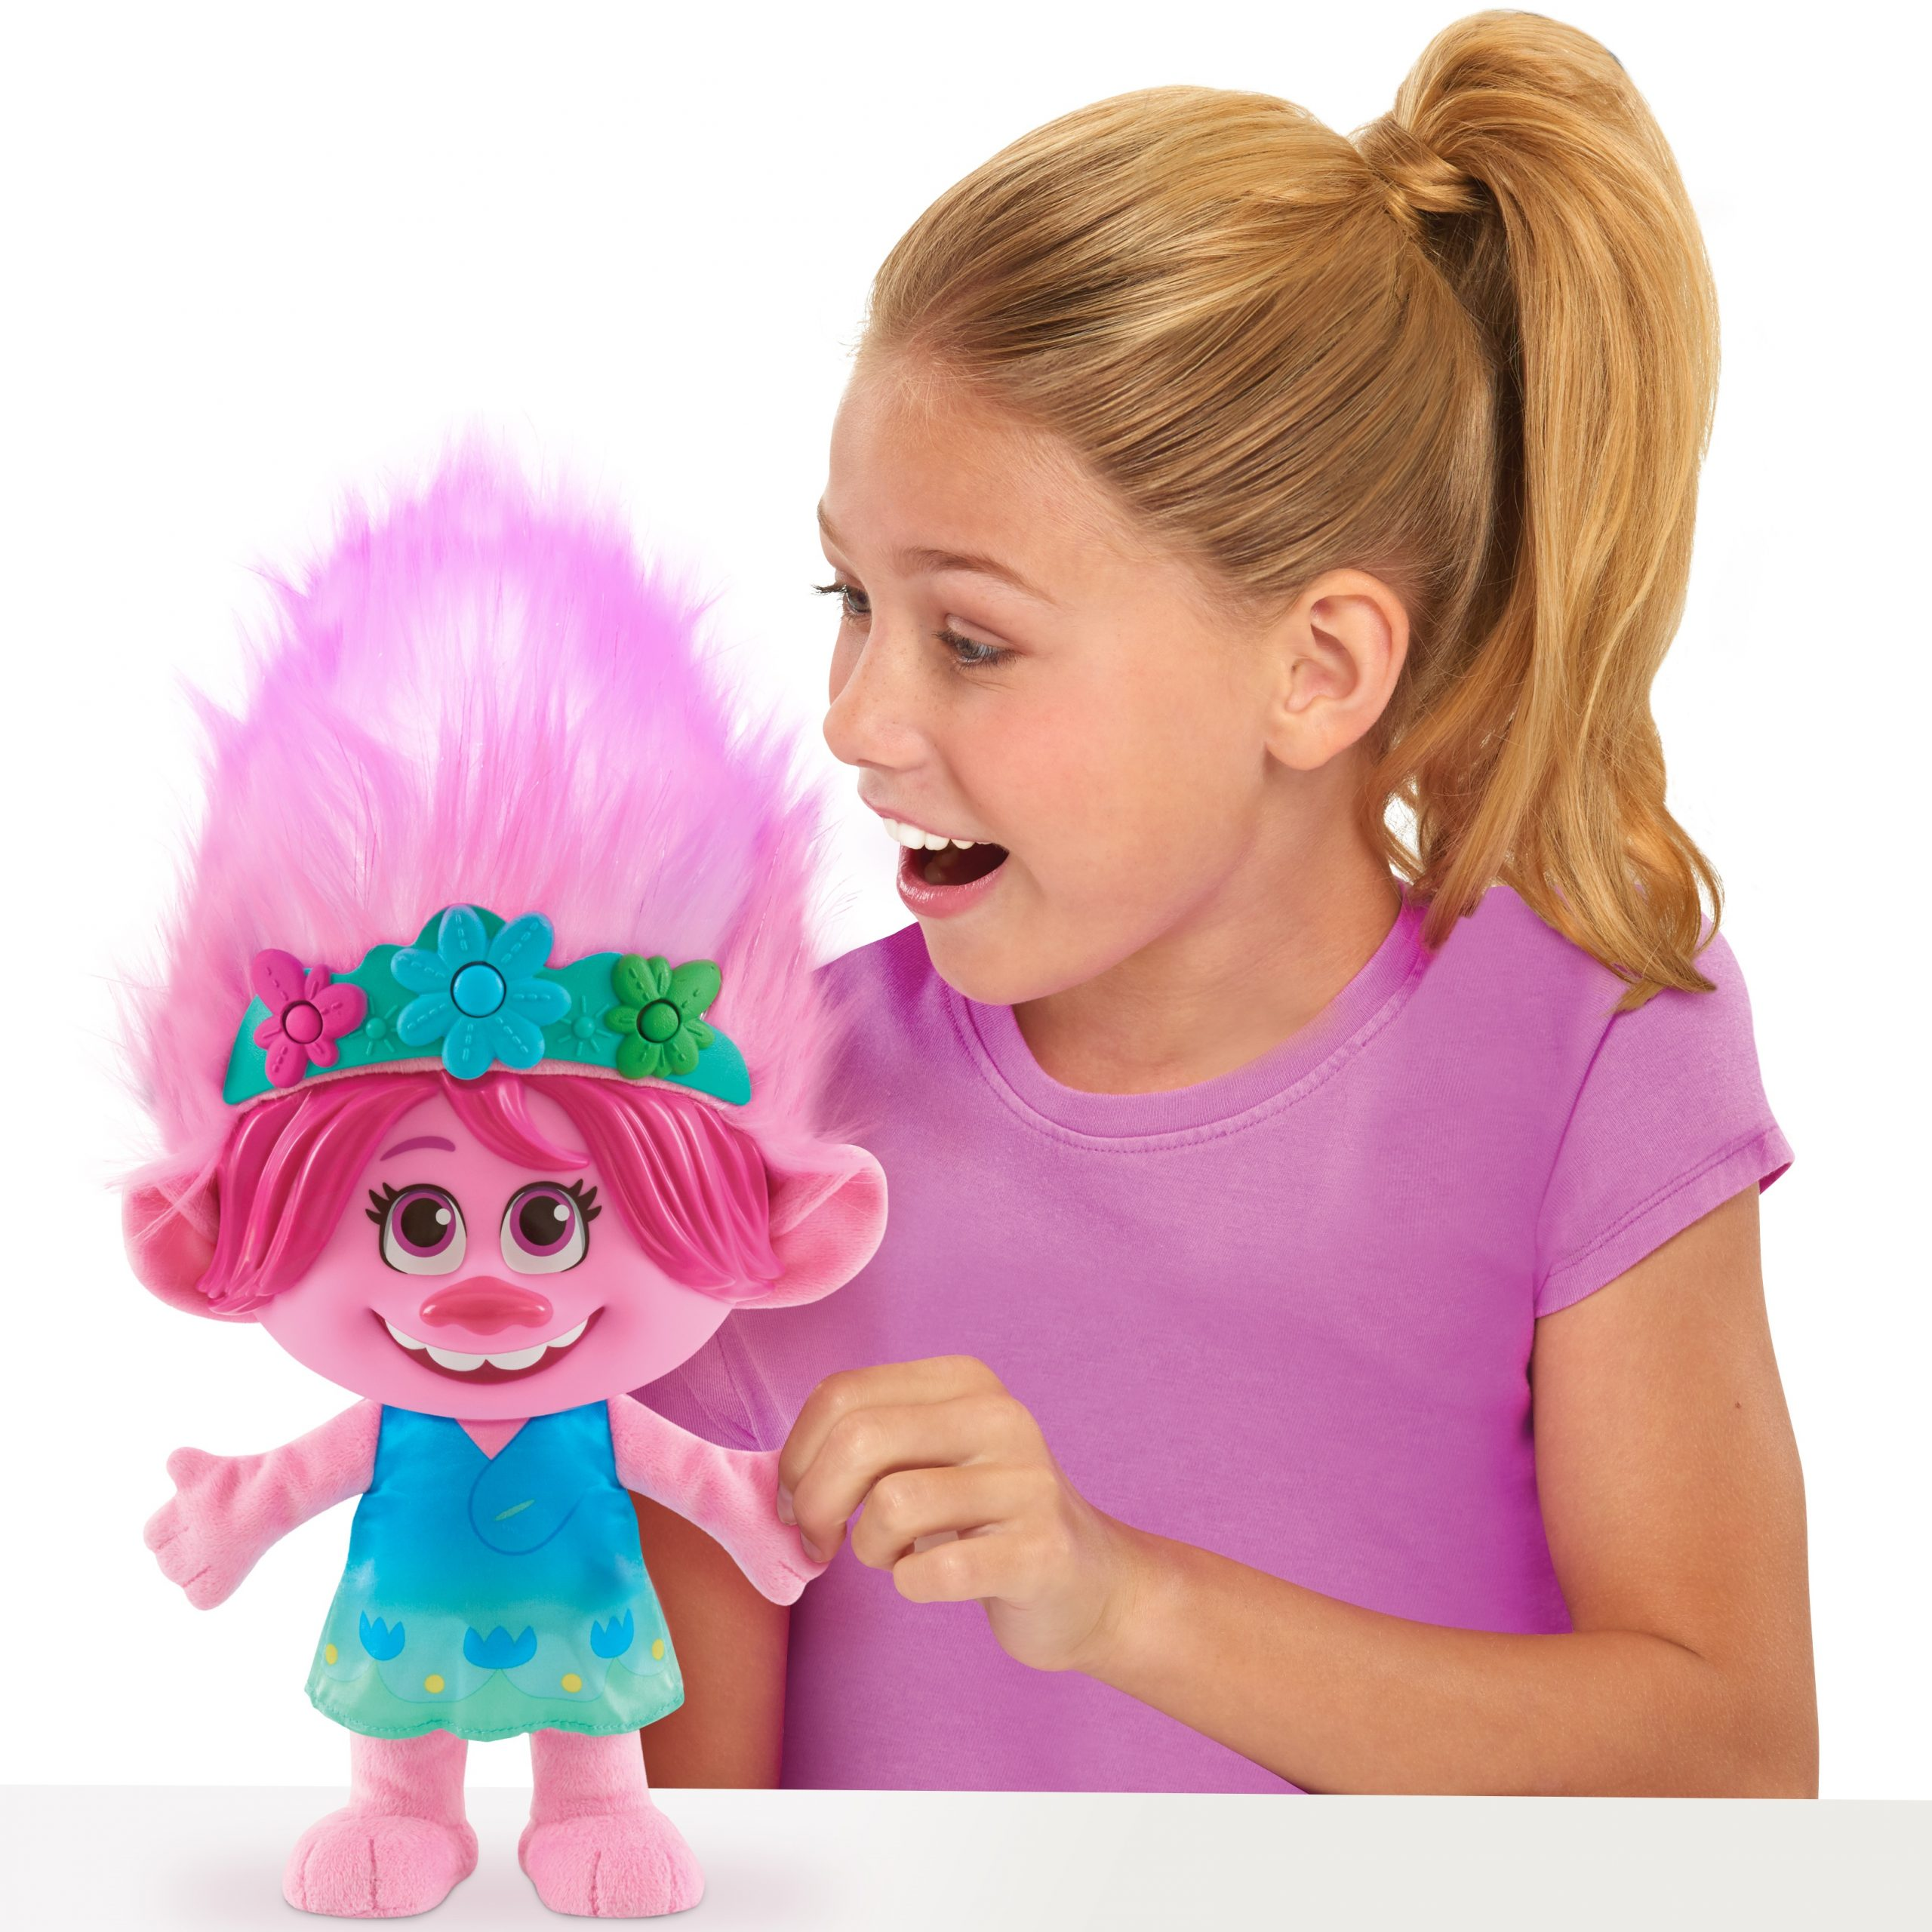 DreamWorks Trolls World Tour Color Poppin' Poppy